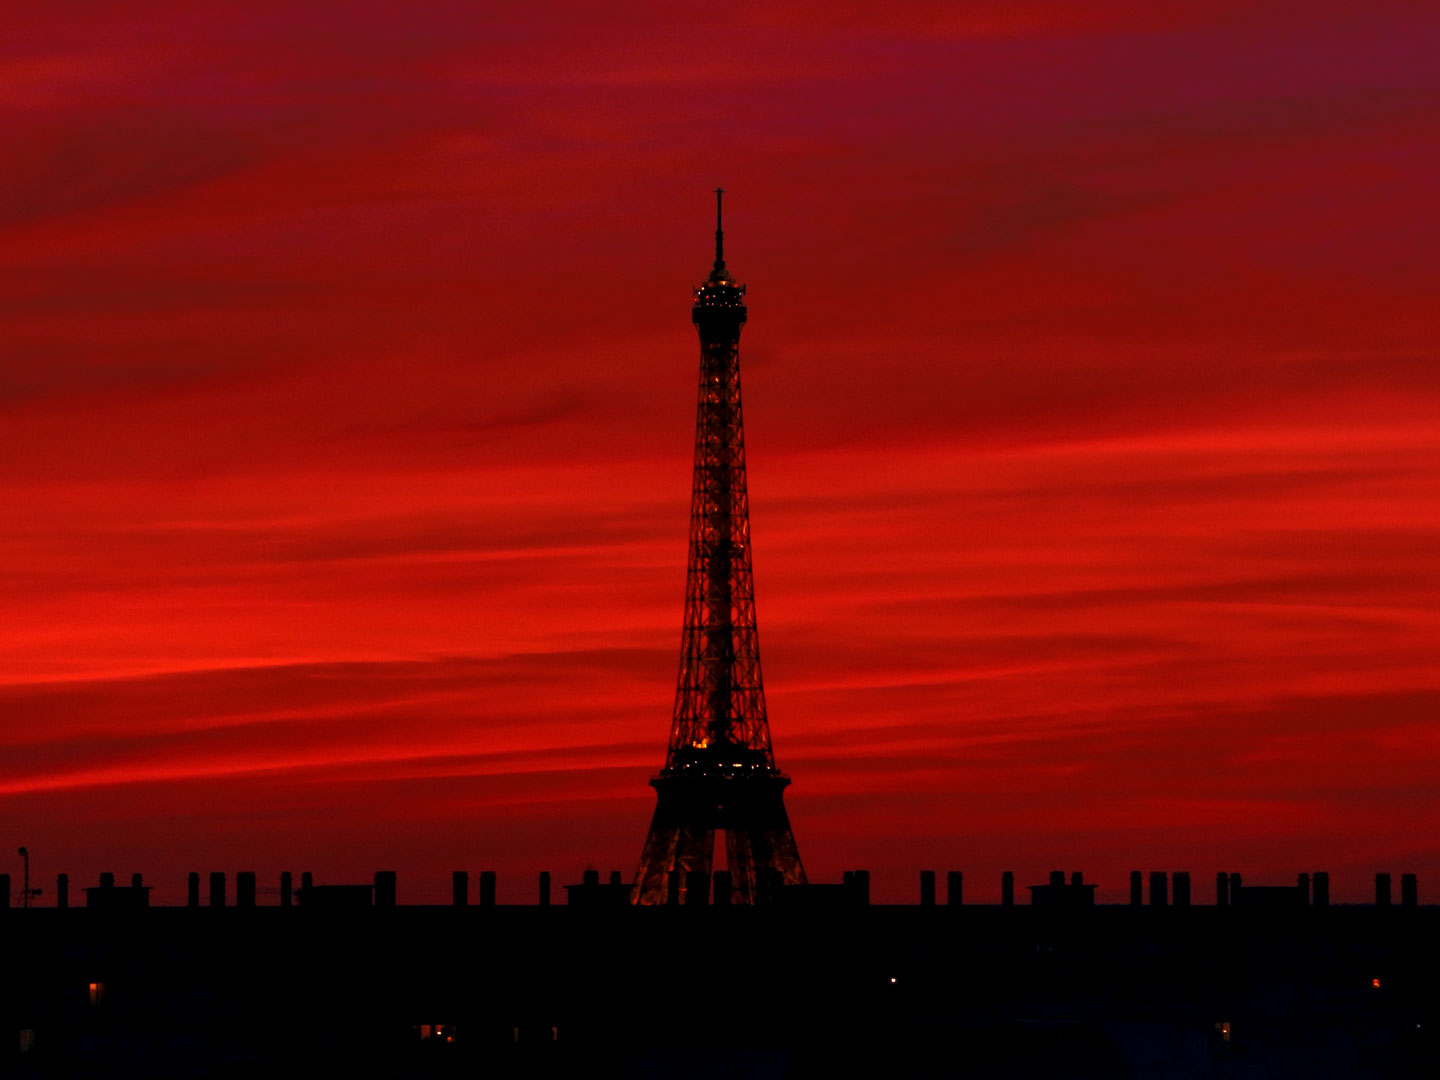 French Photographer Paris France Landscape Photography Red Sunset at Eiffel Tower